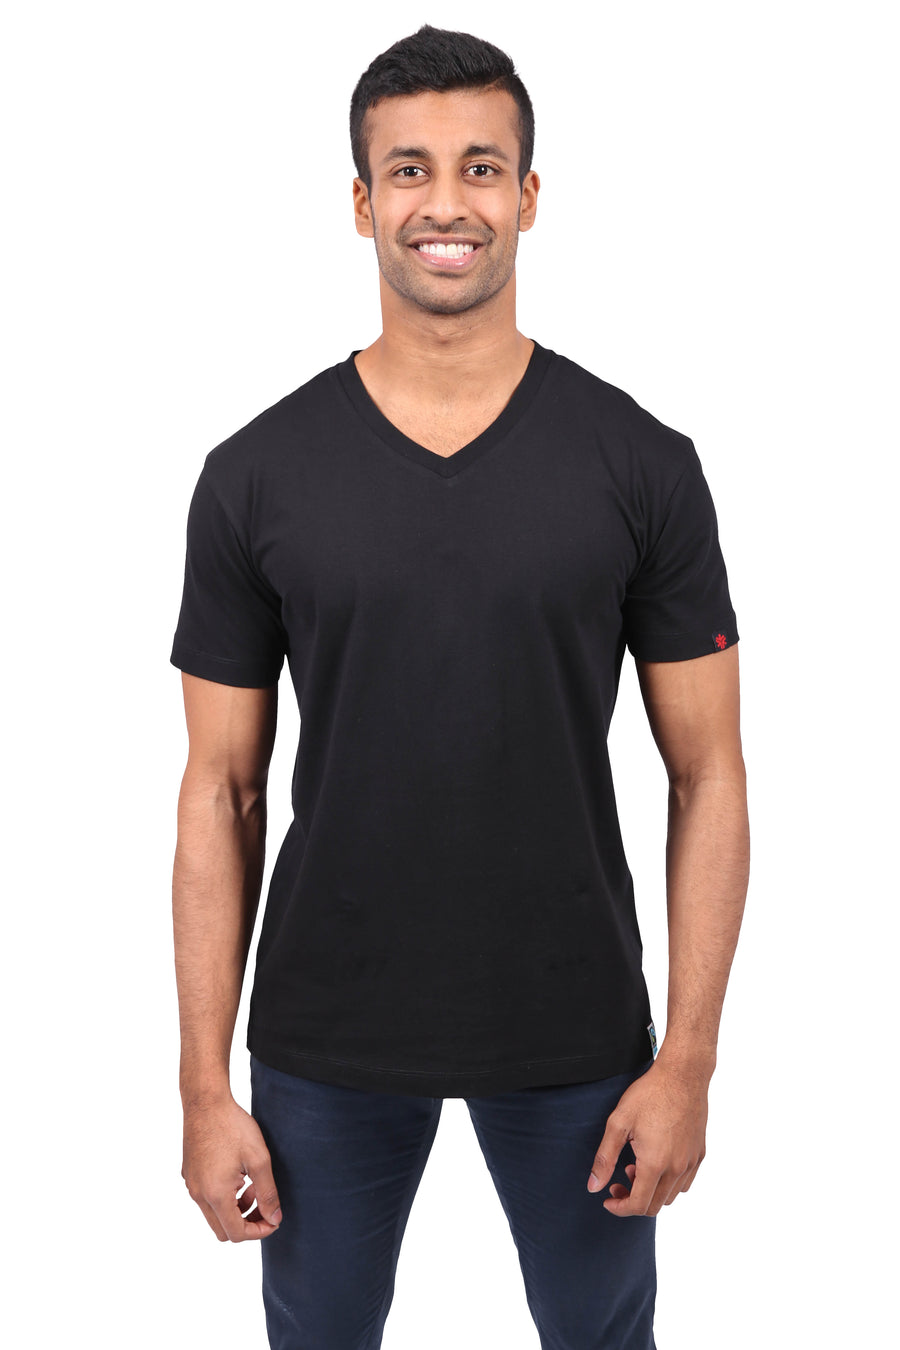 Unisex Black V-Neck Organic Fairtrade Tee